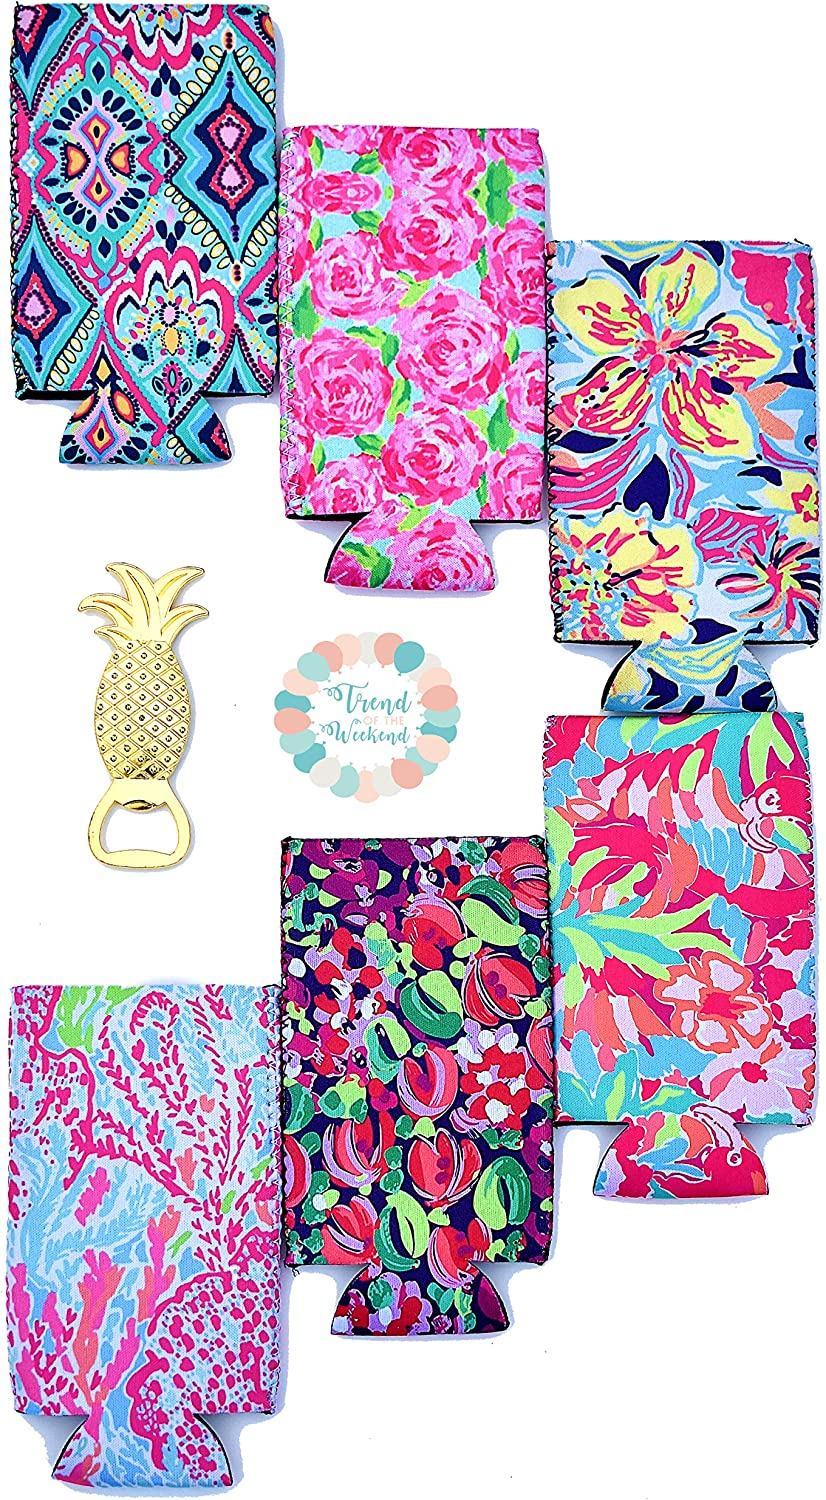 6-Pack Slim Can Neoprene Insulators in Cute Floral Patterns and Pineapple Bottle Opener| Perfect for Insulator for 12oz Tall Drinks Like White Claw, Truly, Red Bull, Spiked Seltzer, Michelob Ultra!